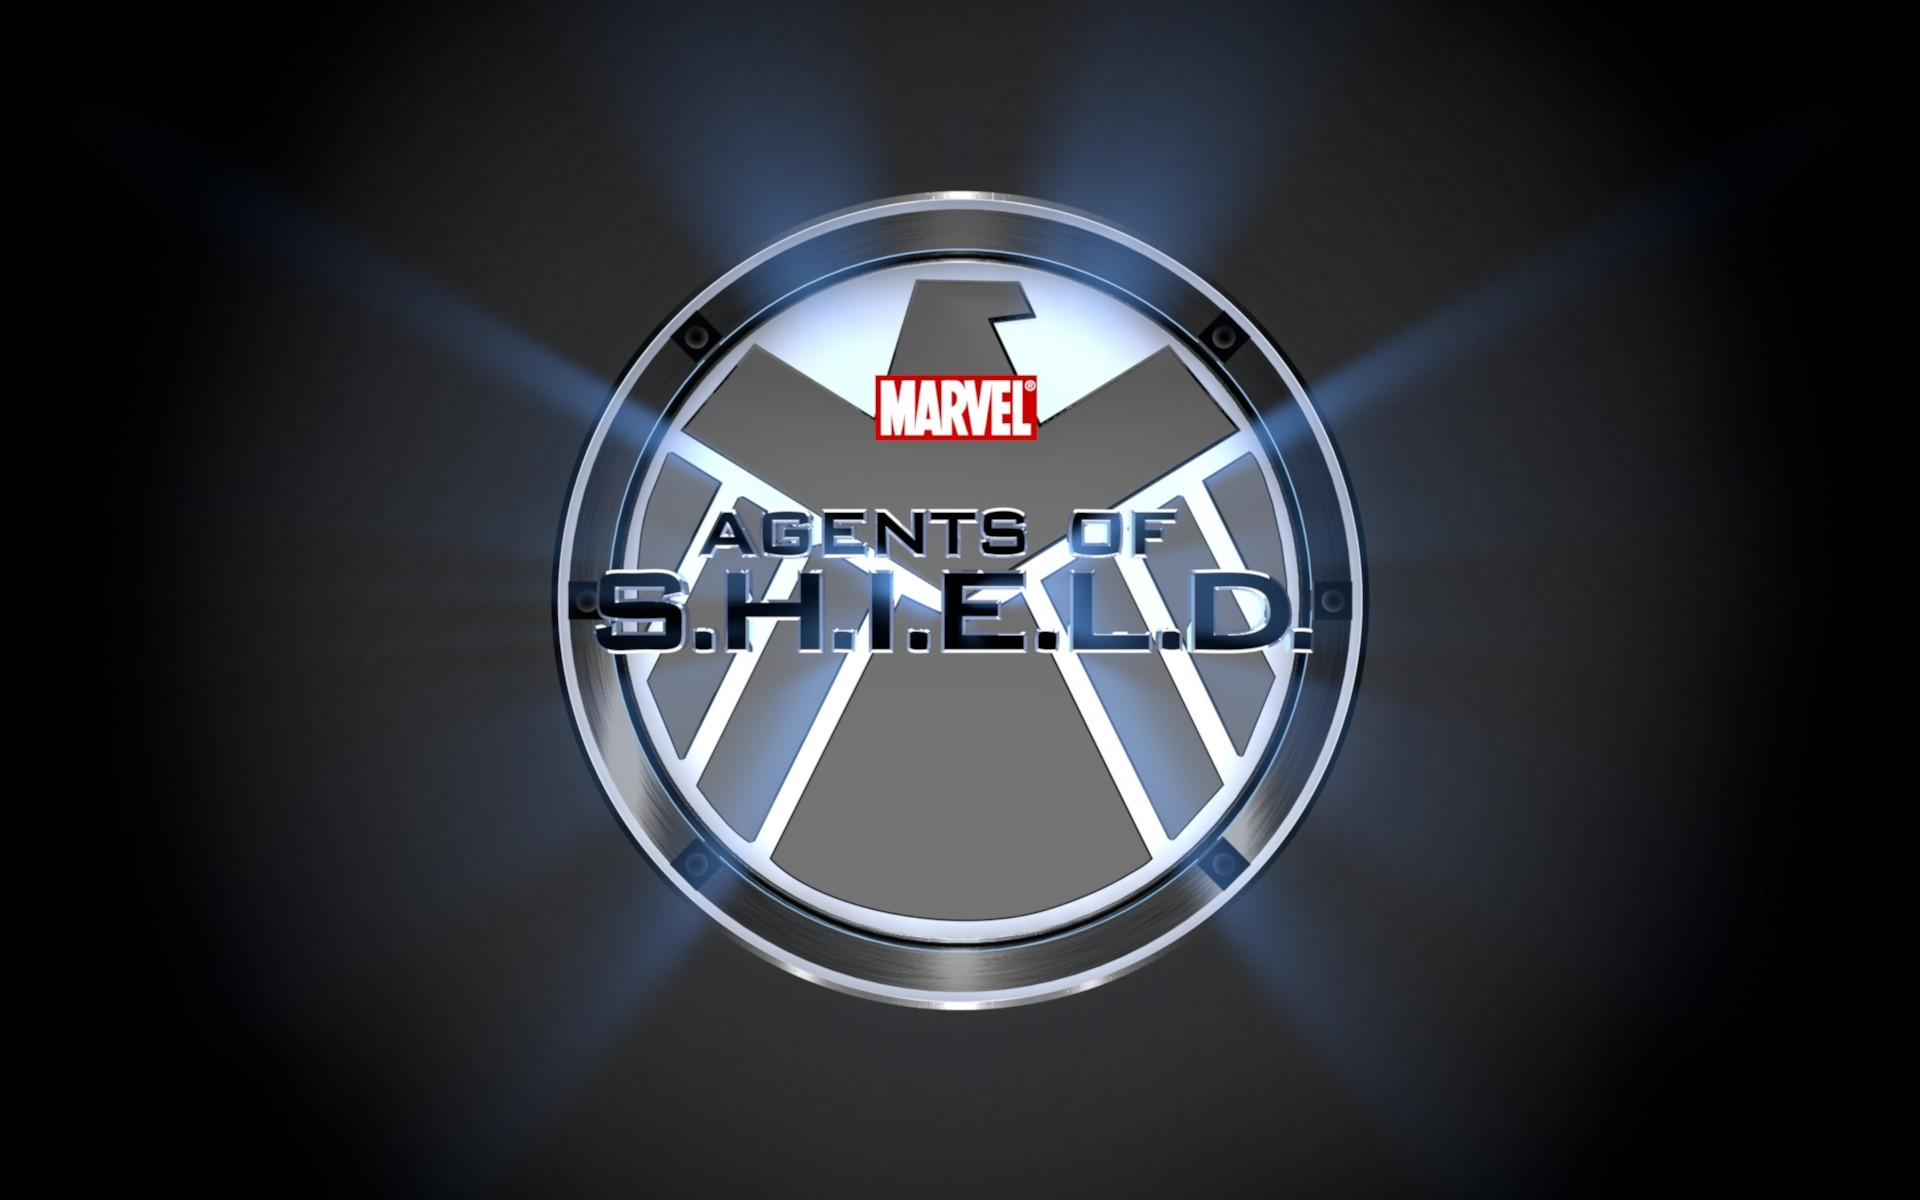 1920x1200 Marvel's Agents of S.H.I.E.L.D. Wallpapers